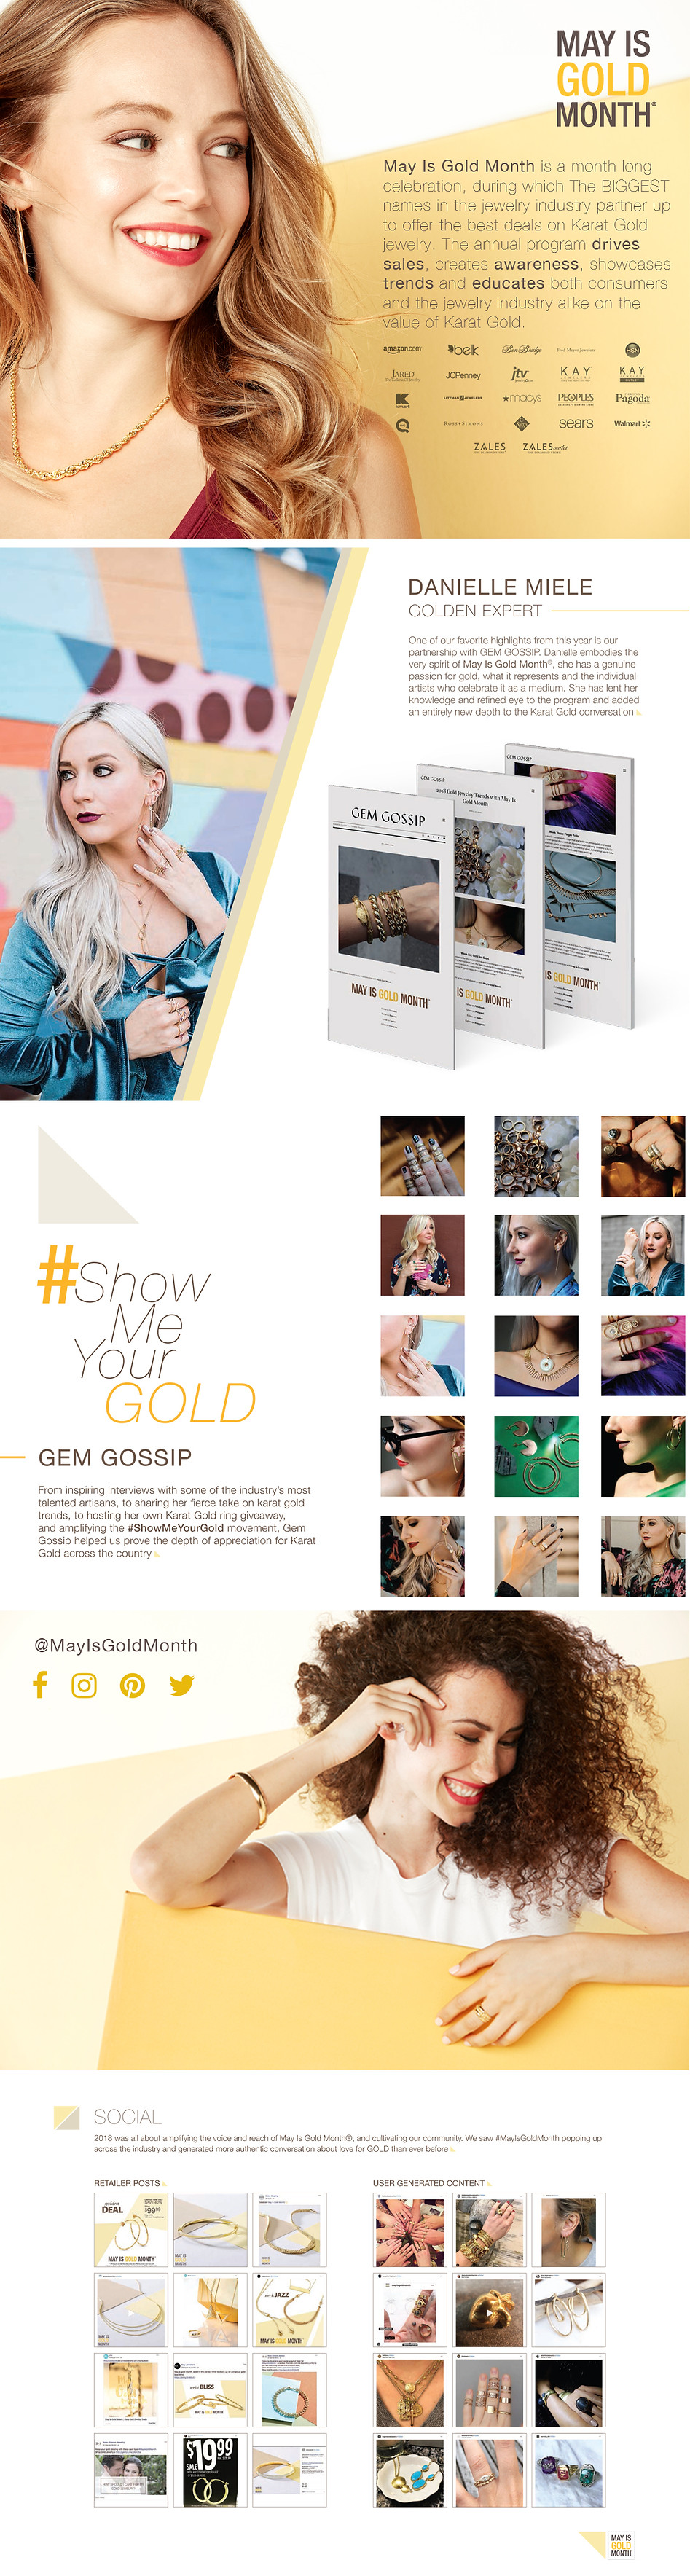 Kathleen ross may is gold month portfolio creative direction